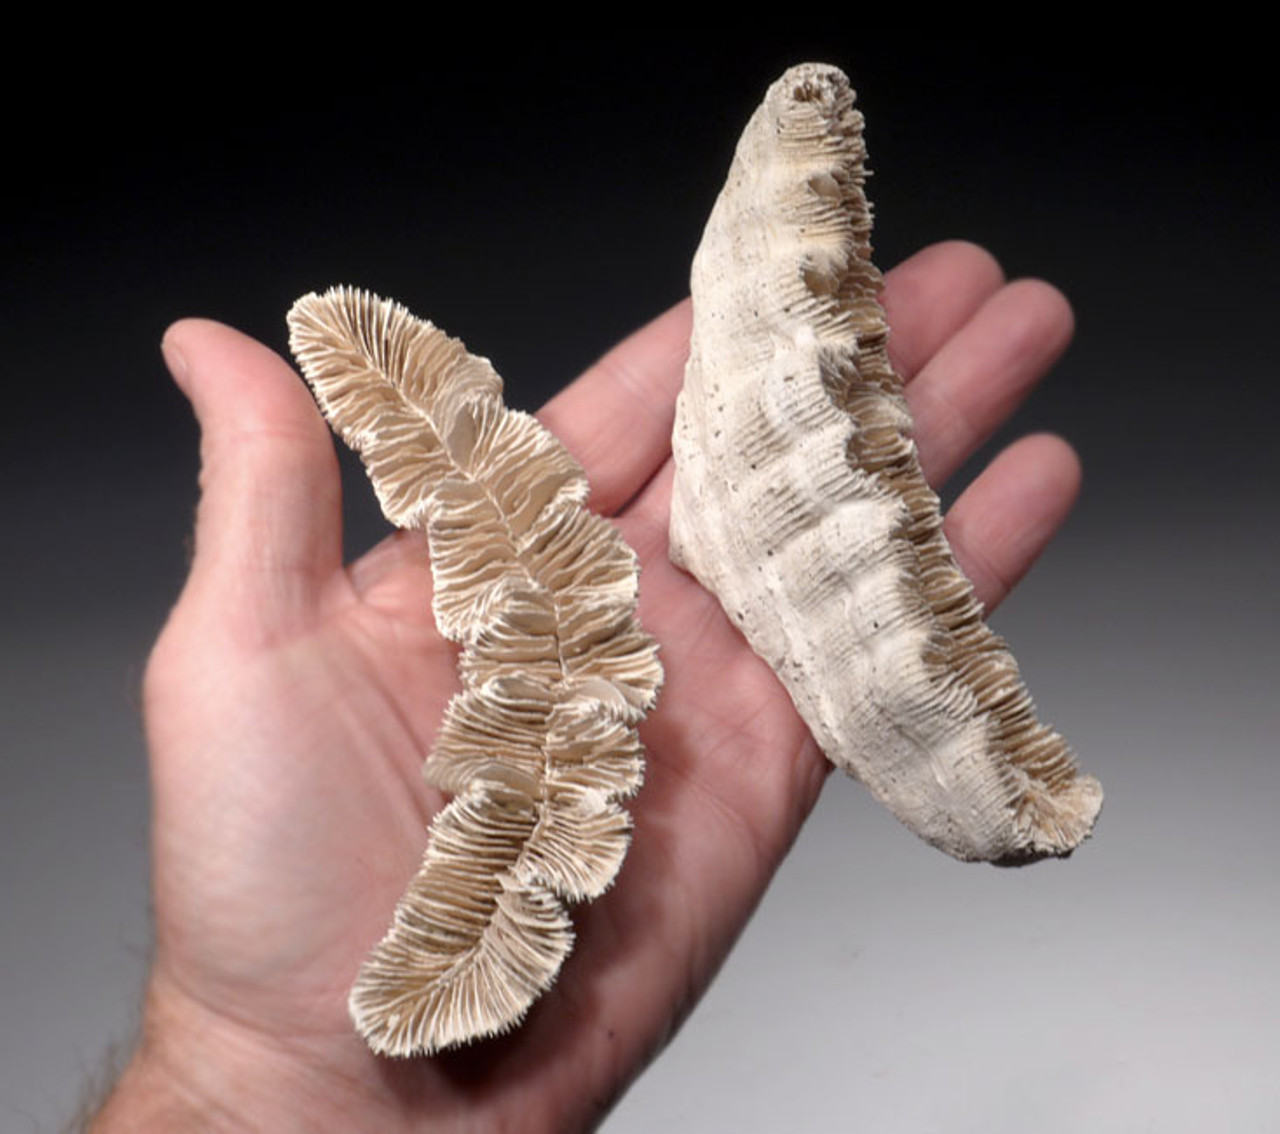 COR122 - FOSSILIZED PAIR OF JUVENILE PREHISTORIC ROSE CORAL COLONIES